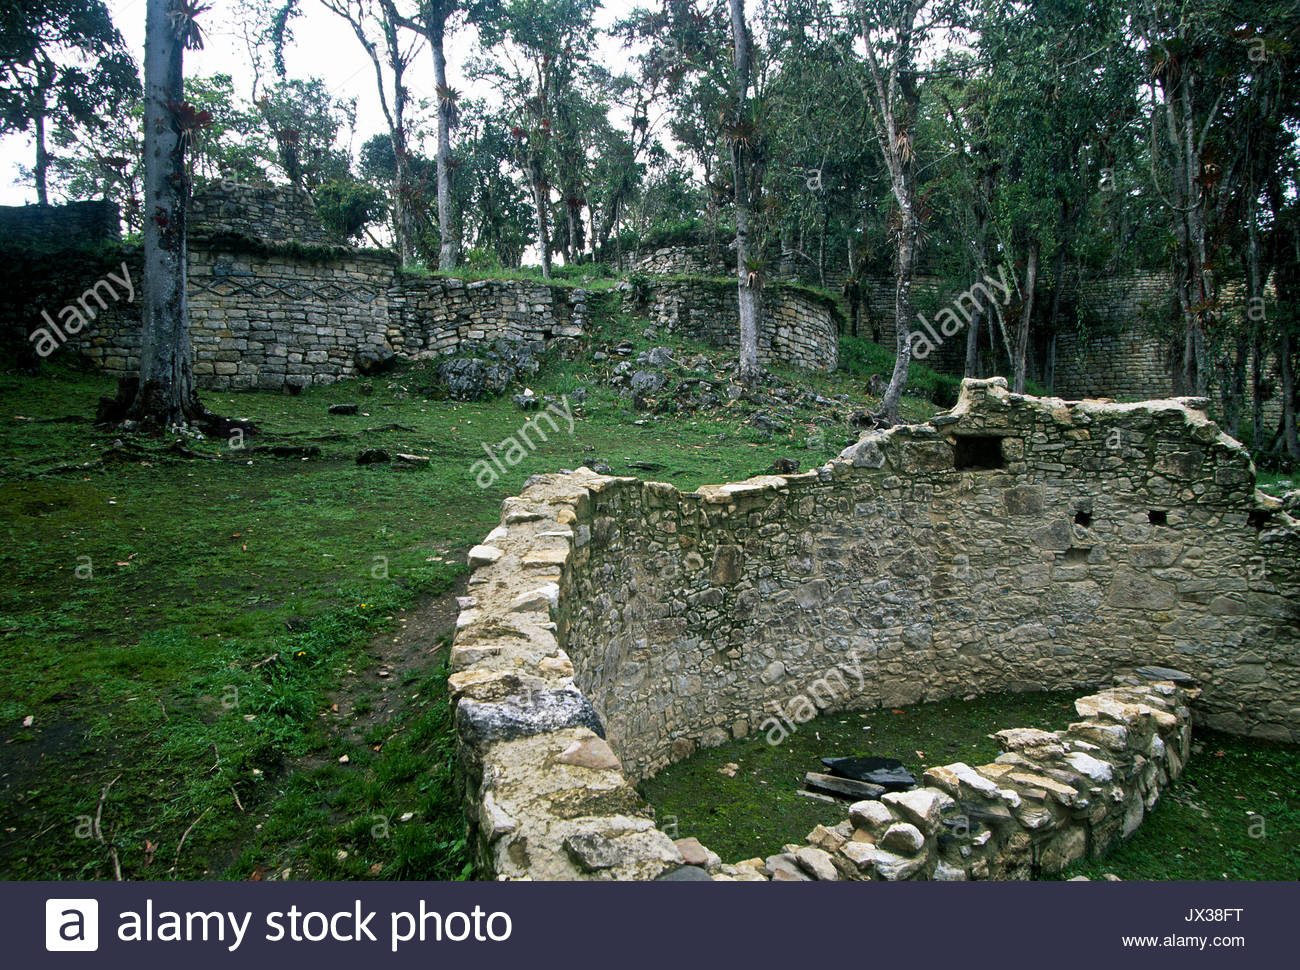 A view of the ruins at Kuelap,an immense pre-Columbian citadel that rivals Machu Picchu. - Stock Image